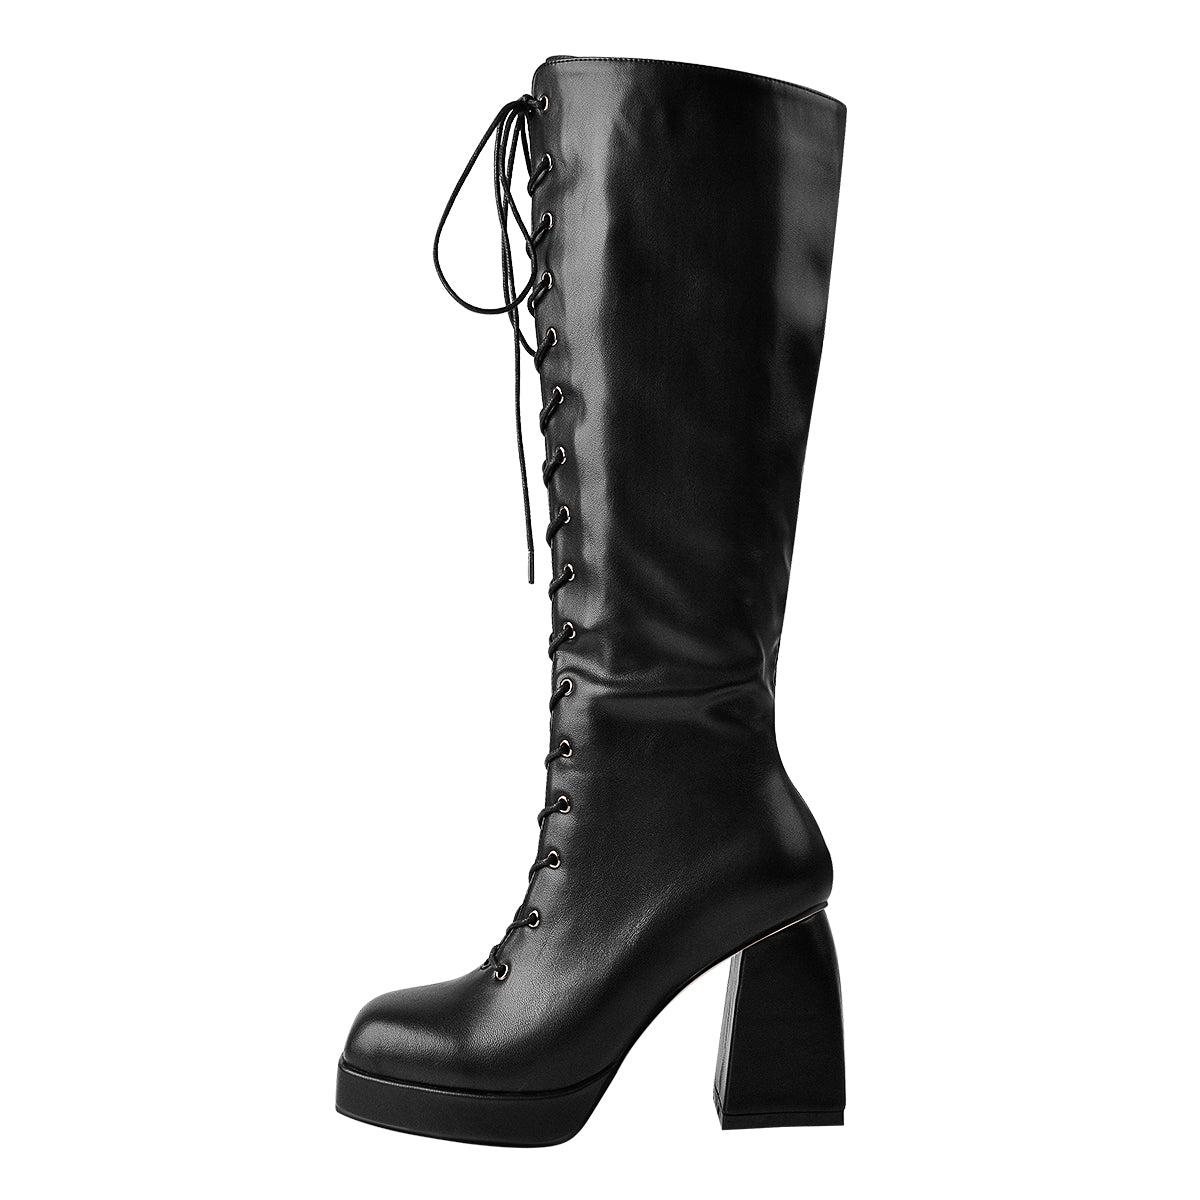 Black Patent Leather Square Chucky Heels Boots